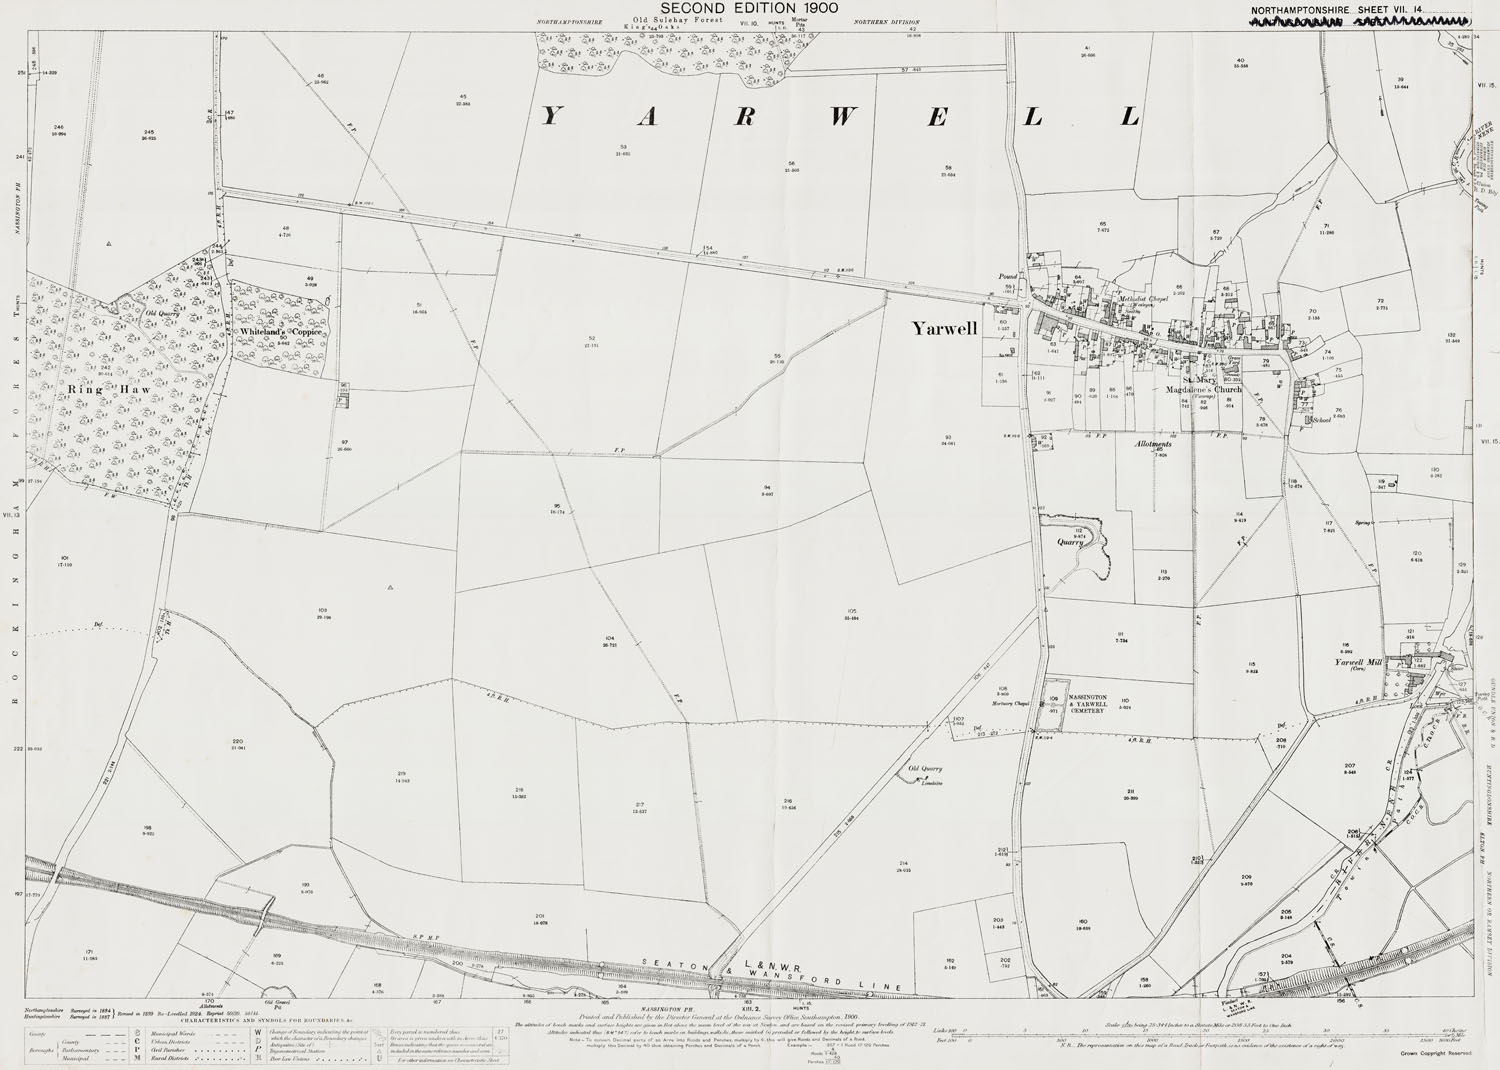 Old Ordnance Survey Map Of Yarwell Northamptonshire In